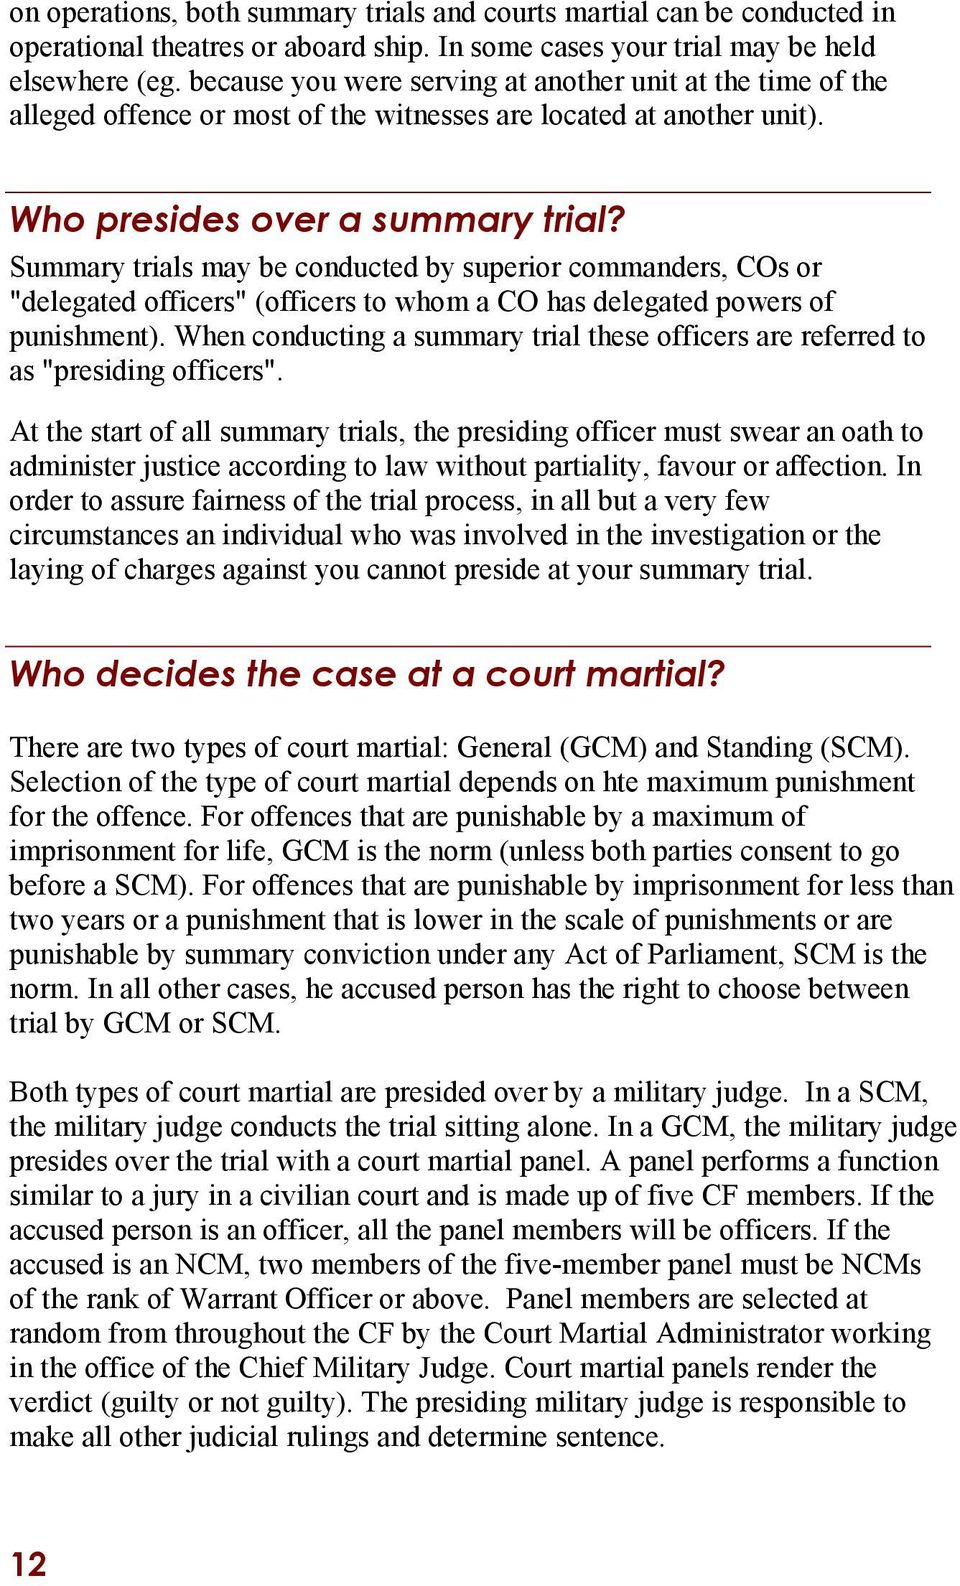 "Summary trials may be conducted by superior commanders, COs or ""delegated officers"" (officers to whom a CO has delegated powers of punishment)."